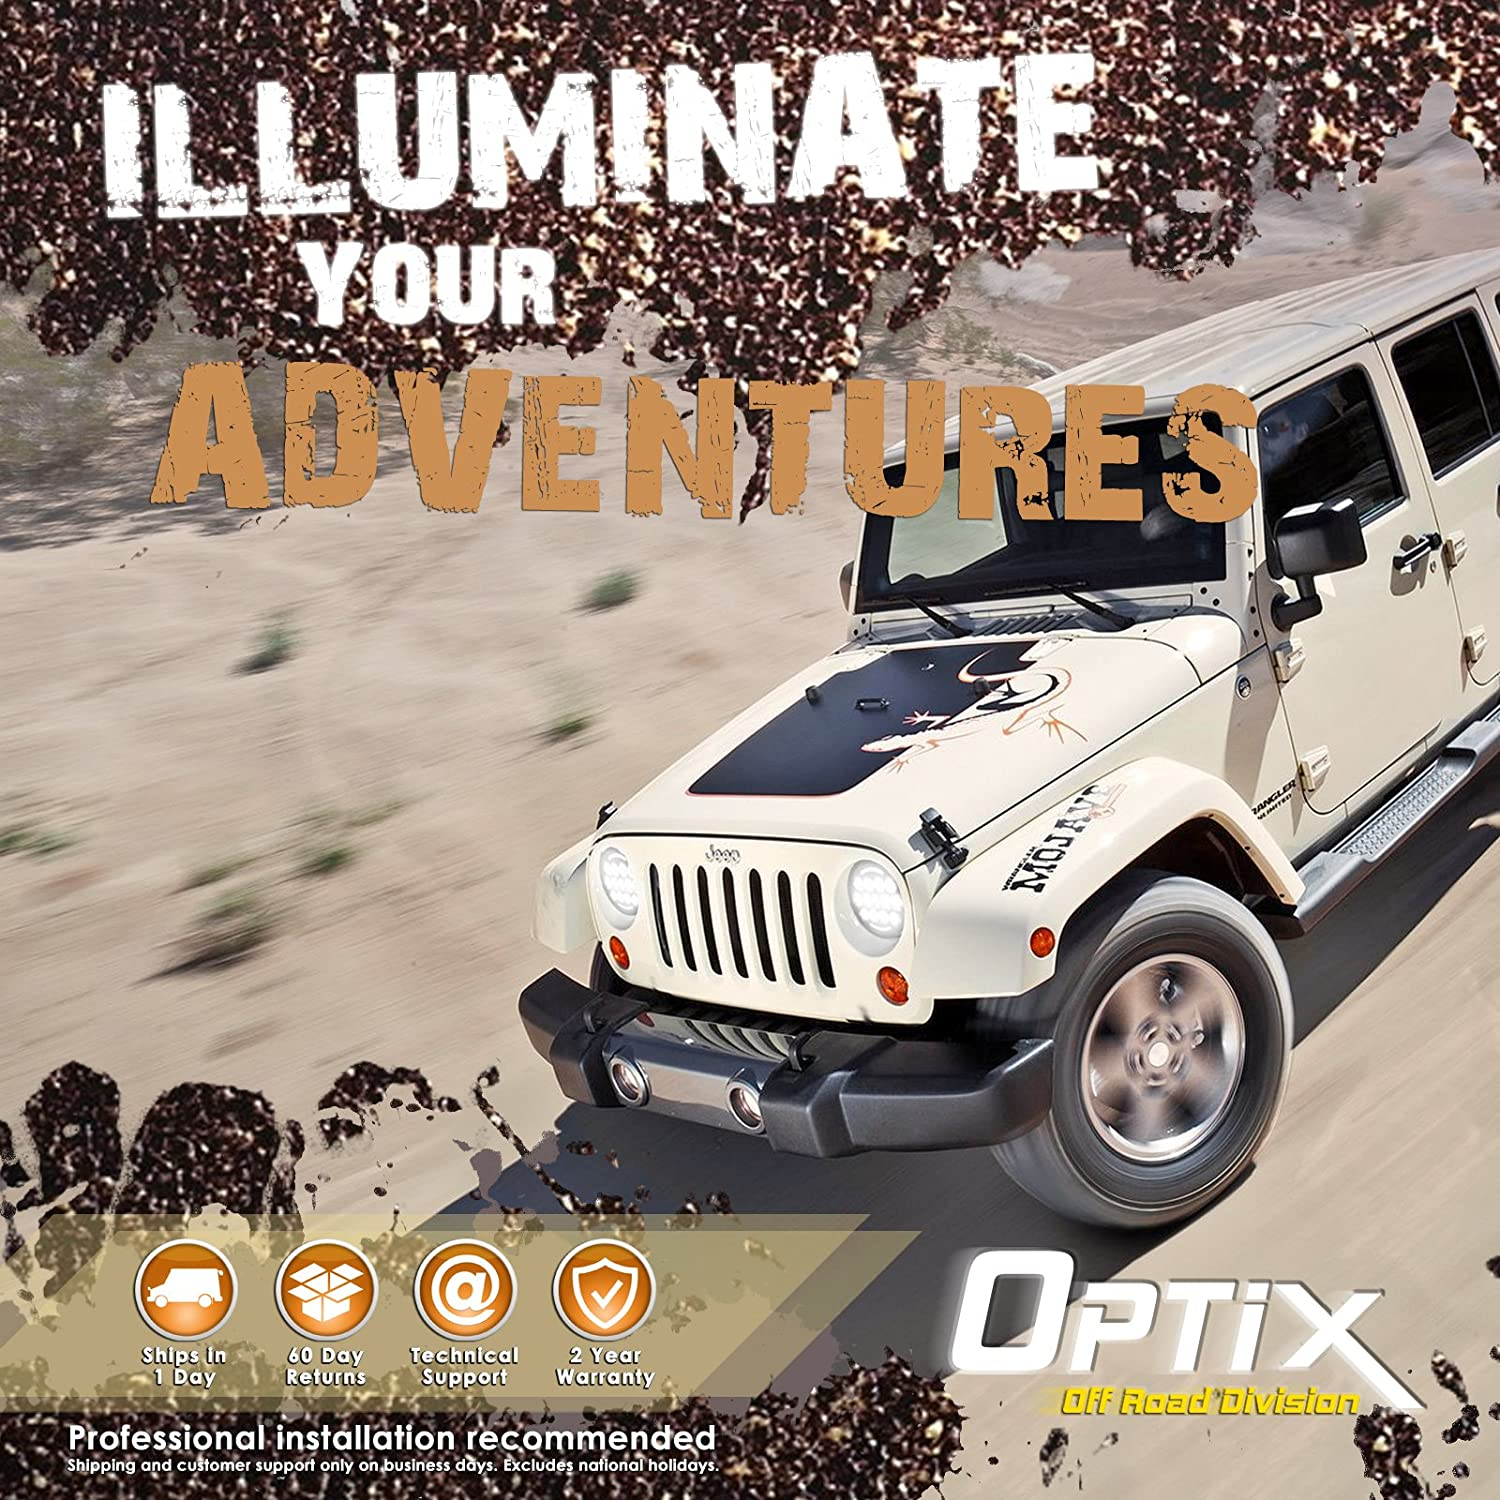 Optix Complete Drl Wiring Adapter Harness Kit For 7 2002 Jeep Wrangler Mini Fuse Box Diagram Round Led Headlight With Daytime Running Lights 1997 2016 Tj Lj Jk Made